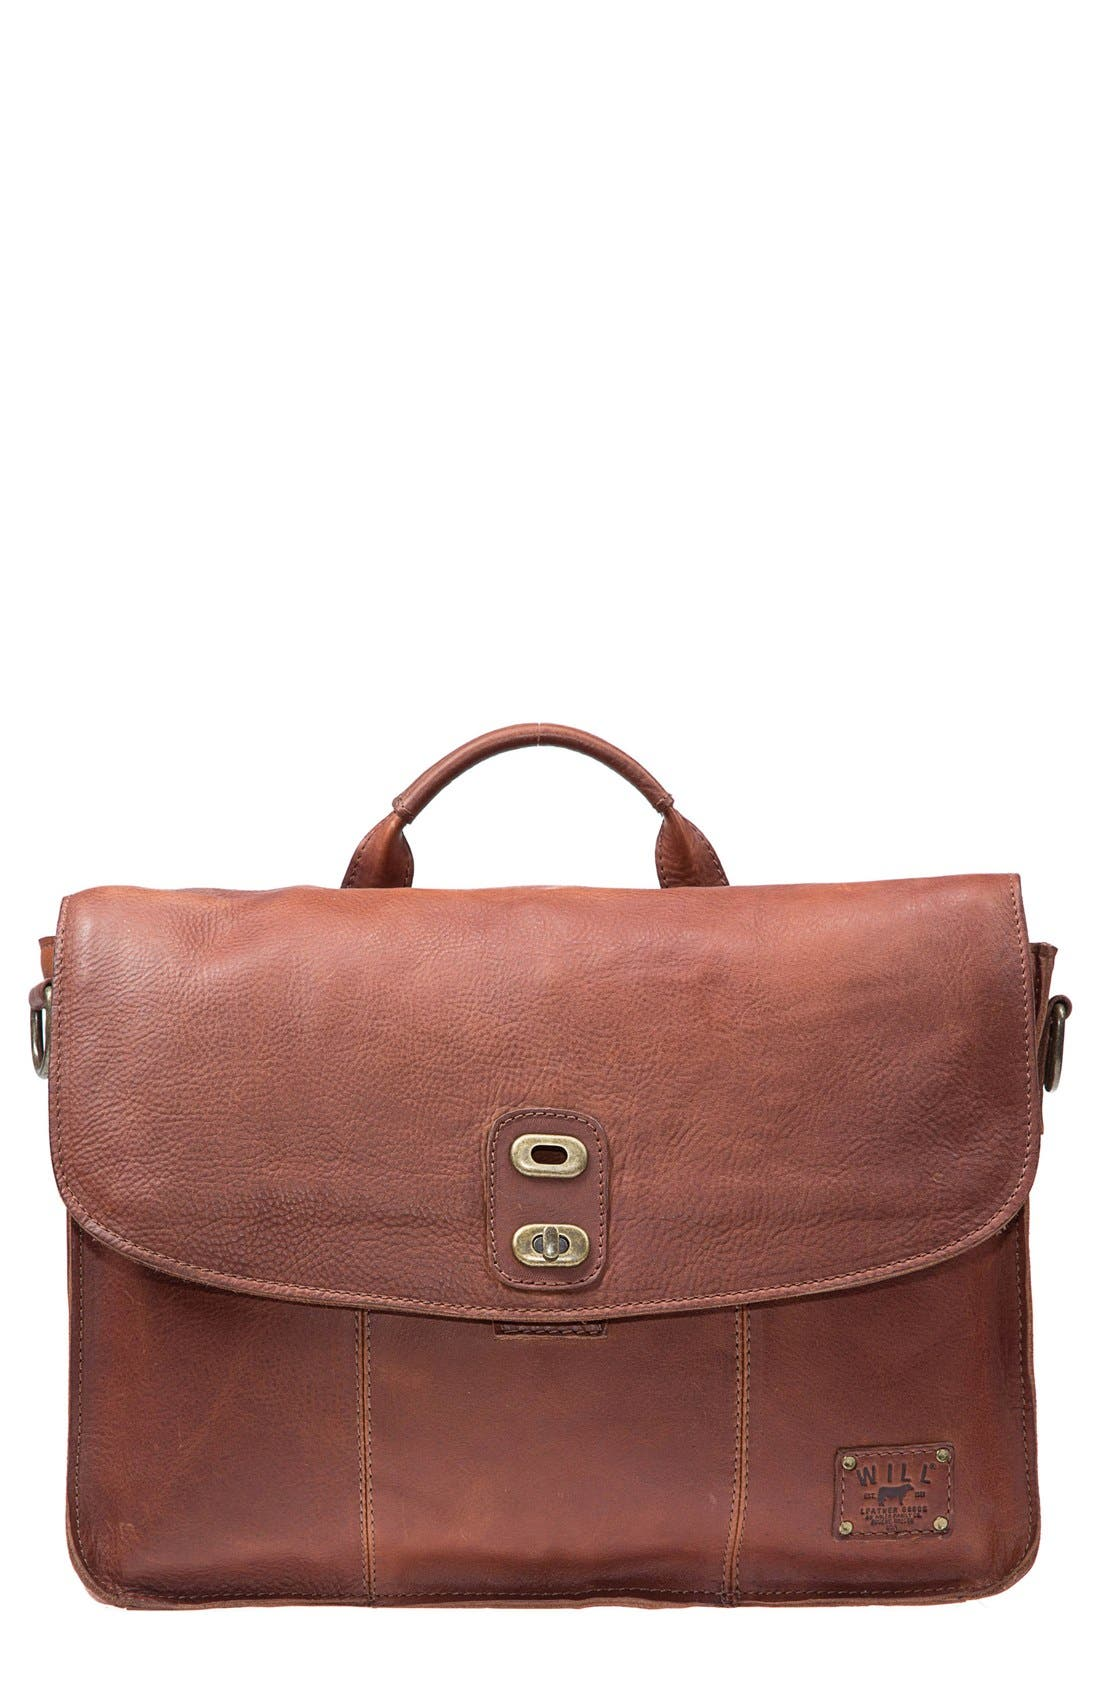 Will Leather Goods 'Kent' Messenger Bag